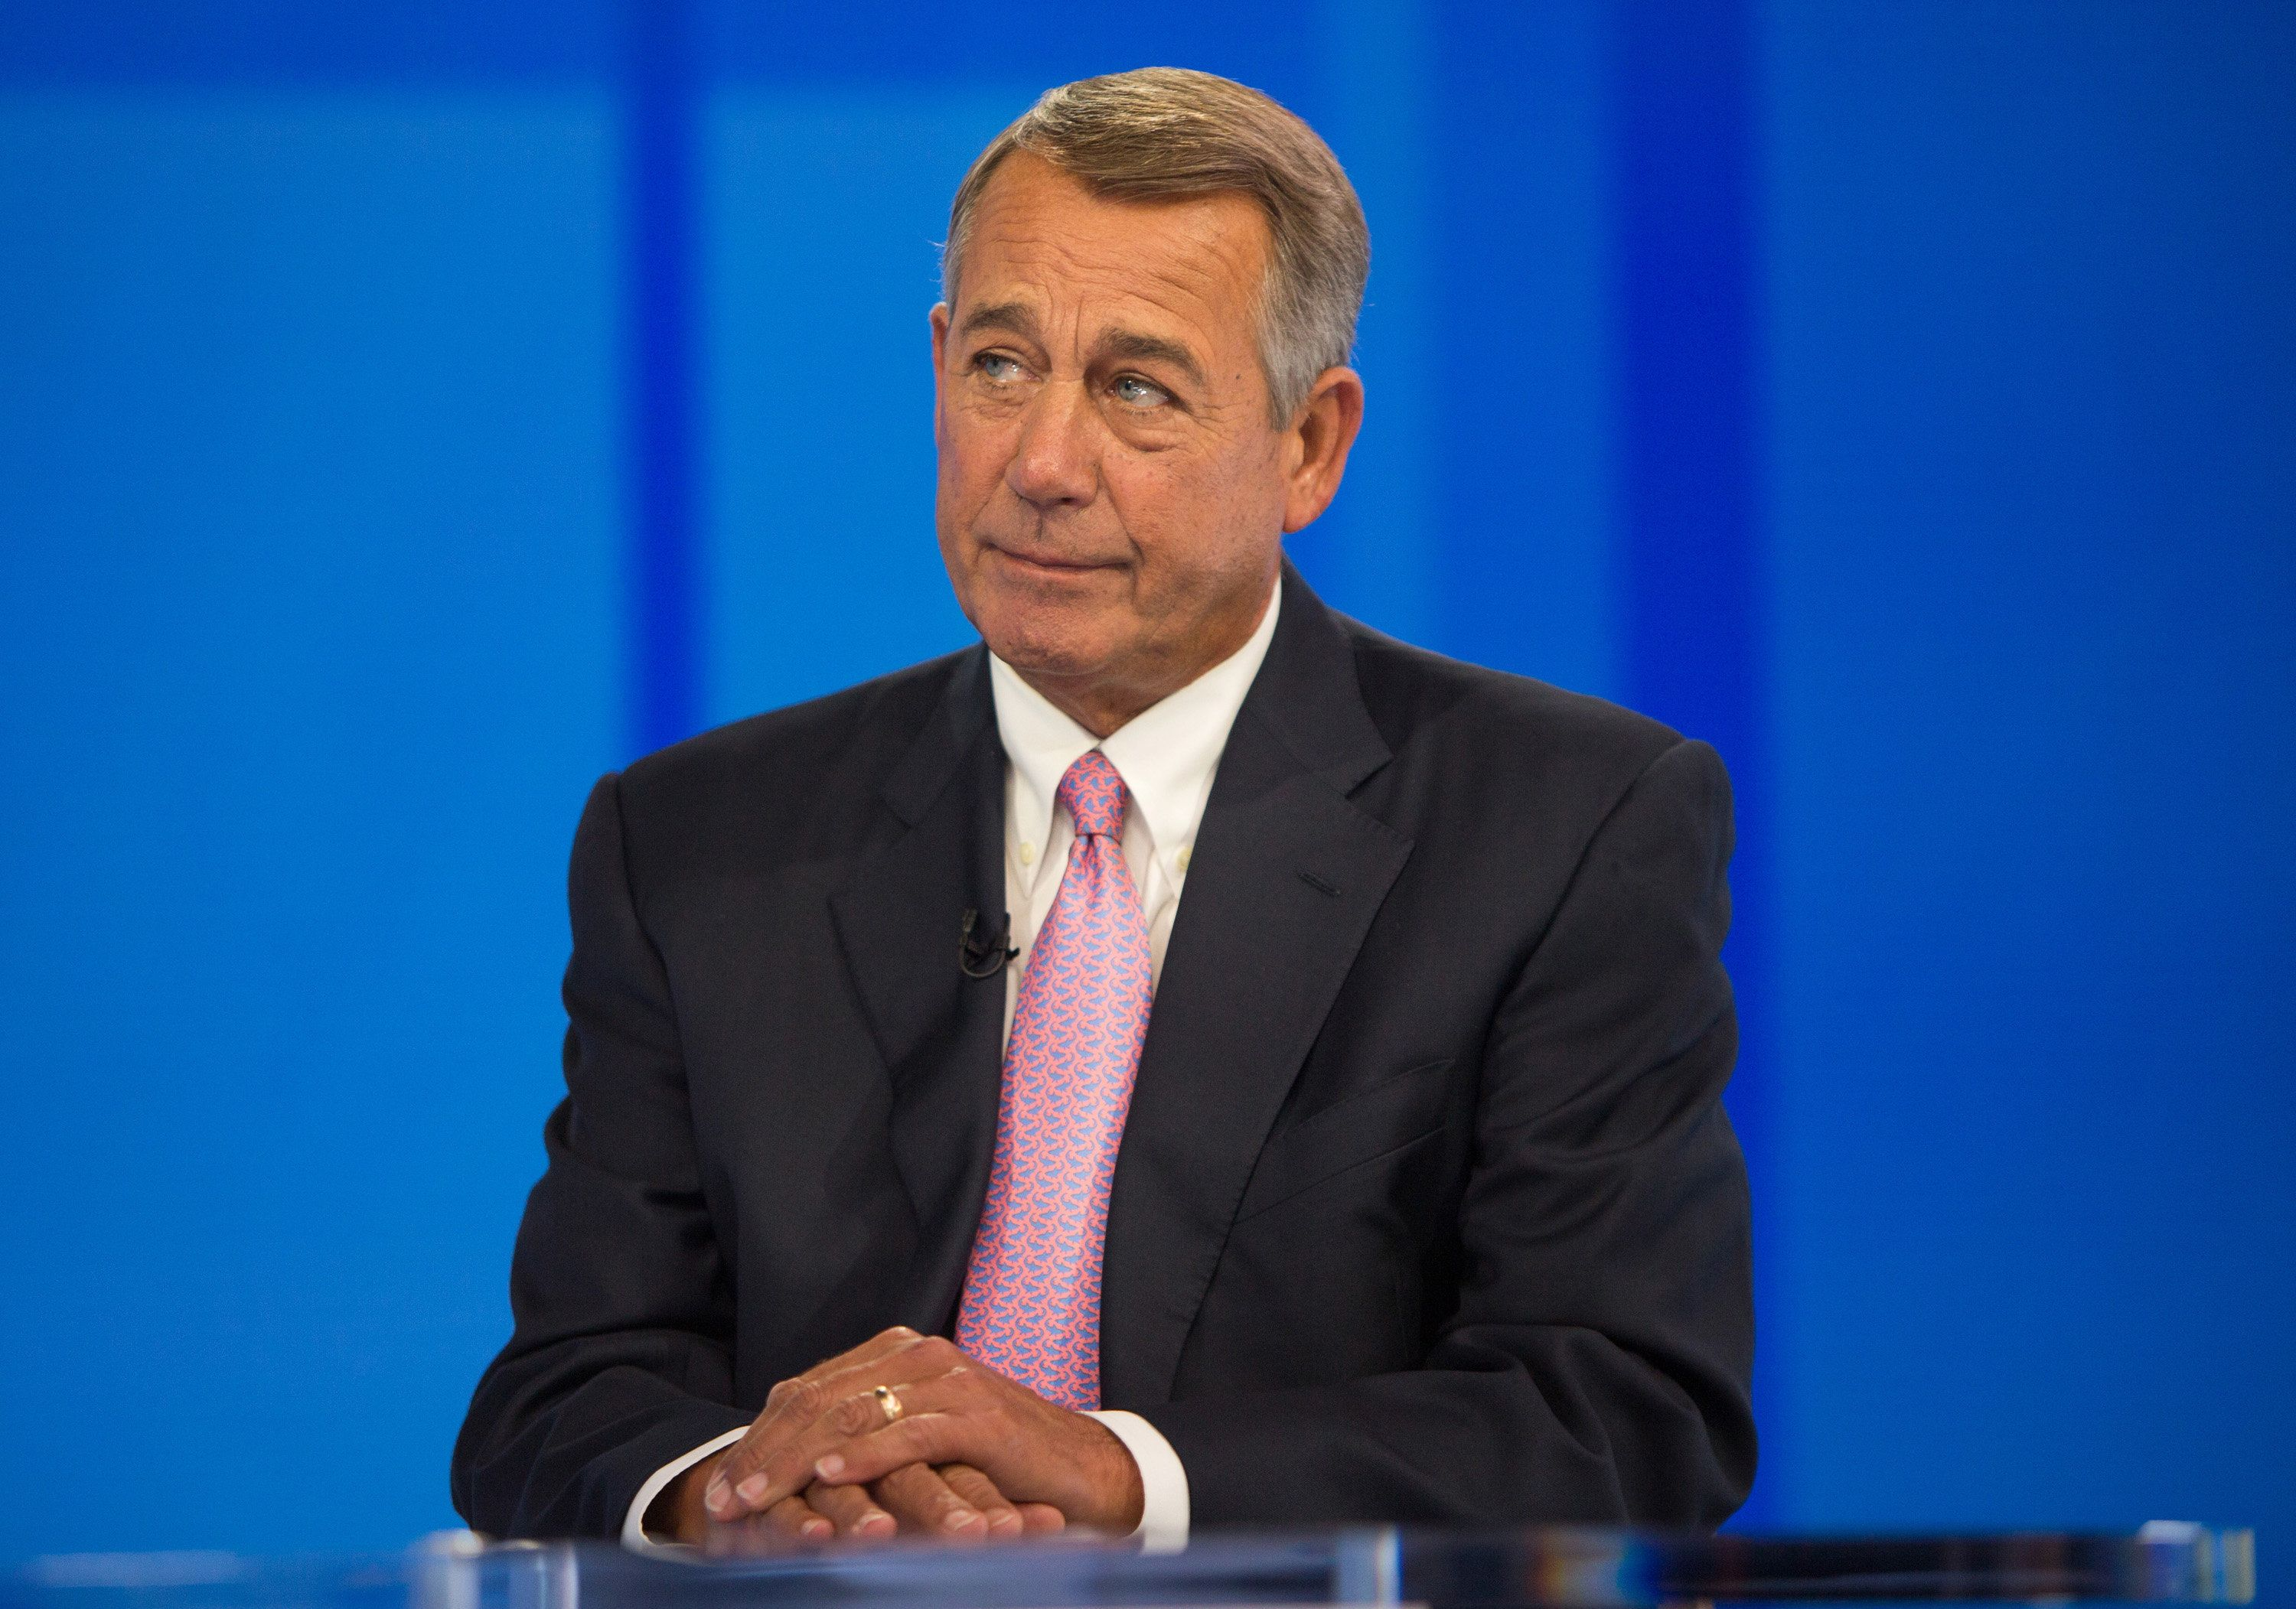 TODAY -- Pictured: John Boehner on Friday, April 13, 2018 -- (Photo by: Nathan Congleton/NBC/NBCU Photo Bank via Getty Images)